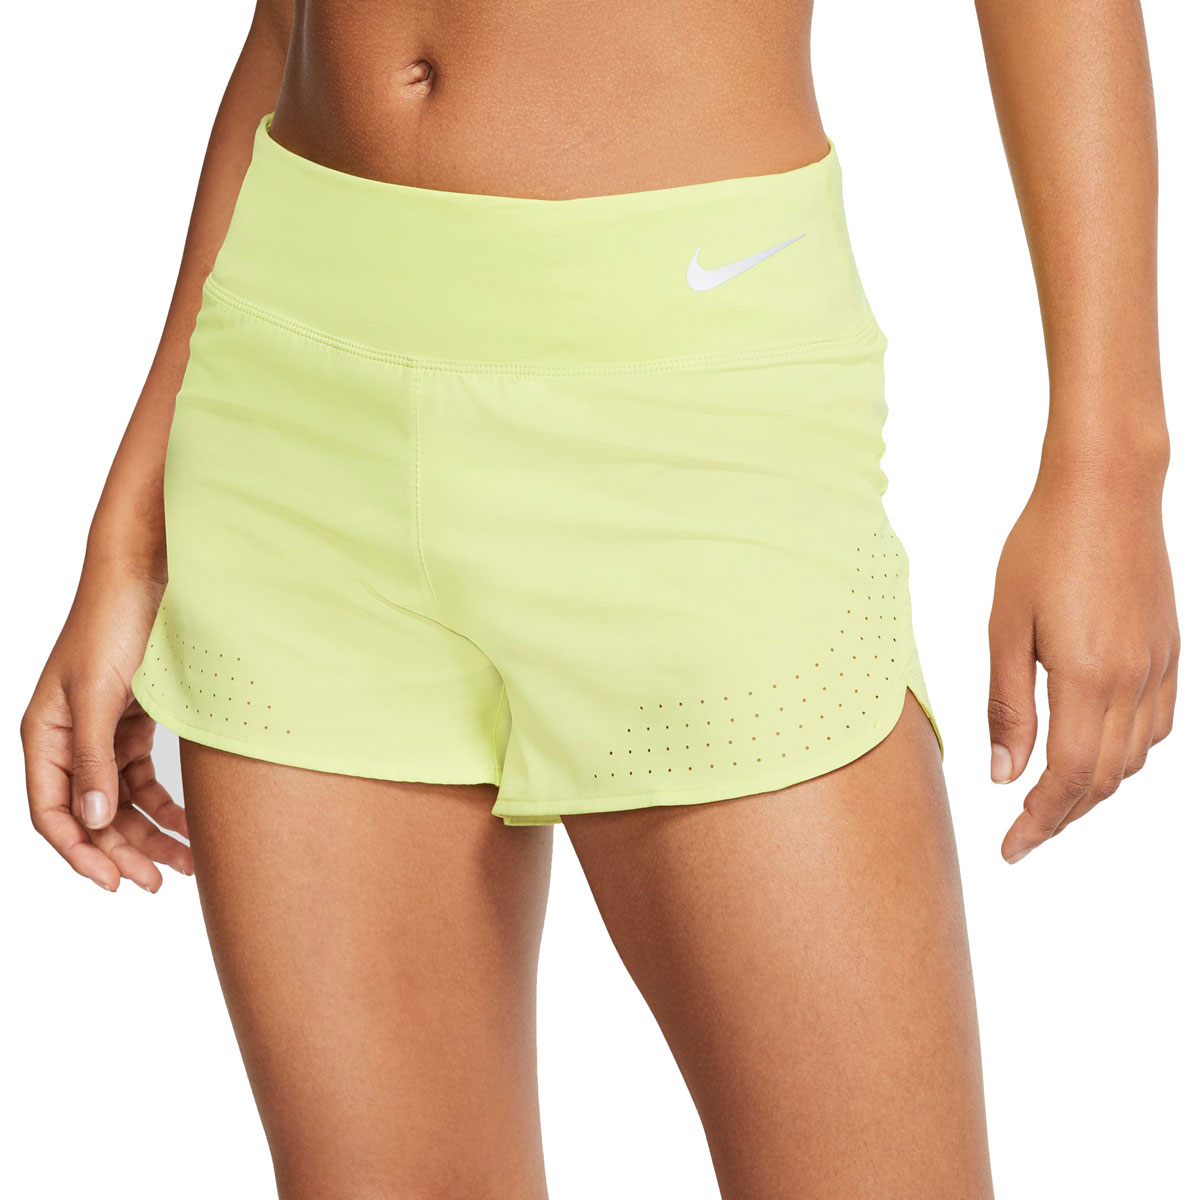 """Women's Nike Eclipse 3"""" Running Shorts - Color: Limelight/Reflective Silver - Size: XS, Limelight/Reflective Silver, large, image 1"""